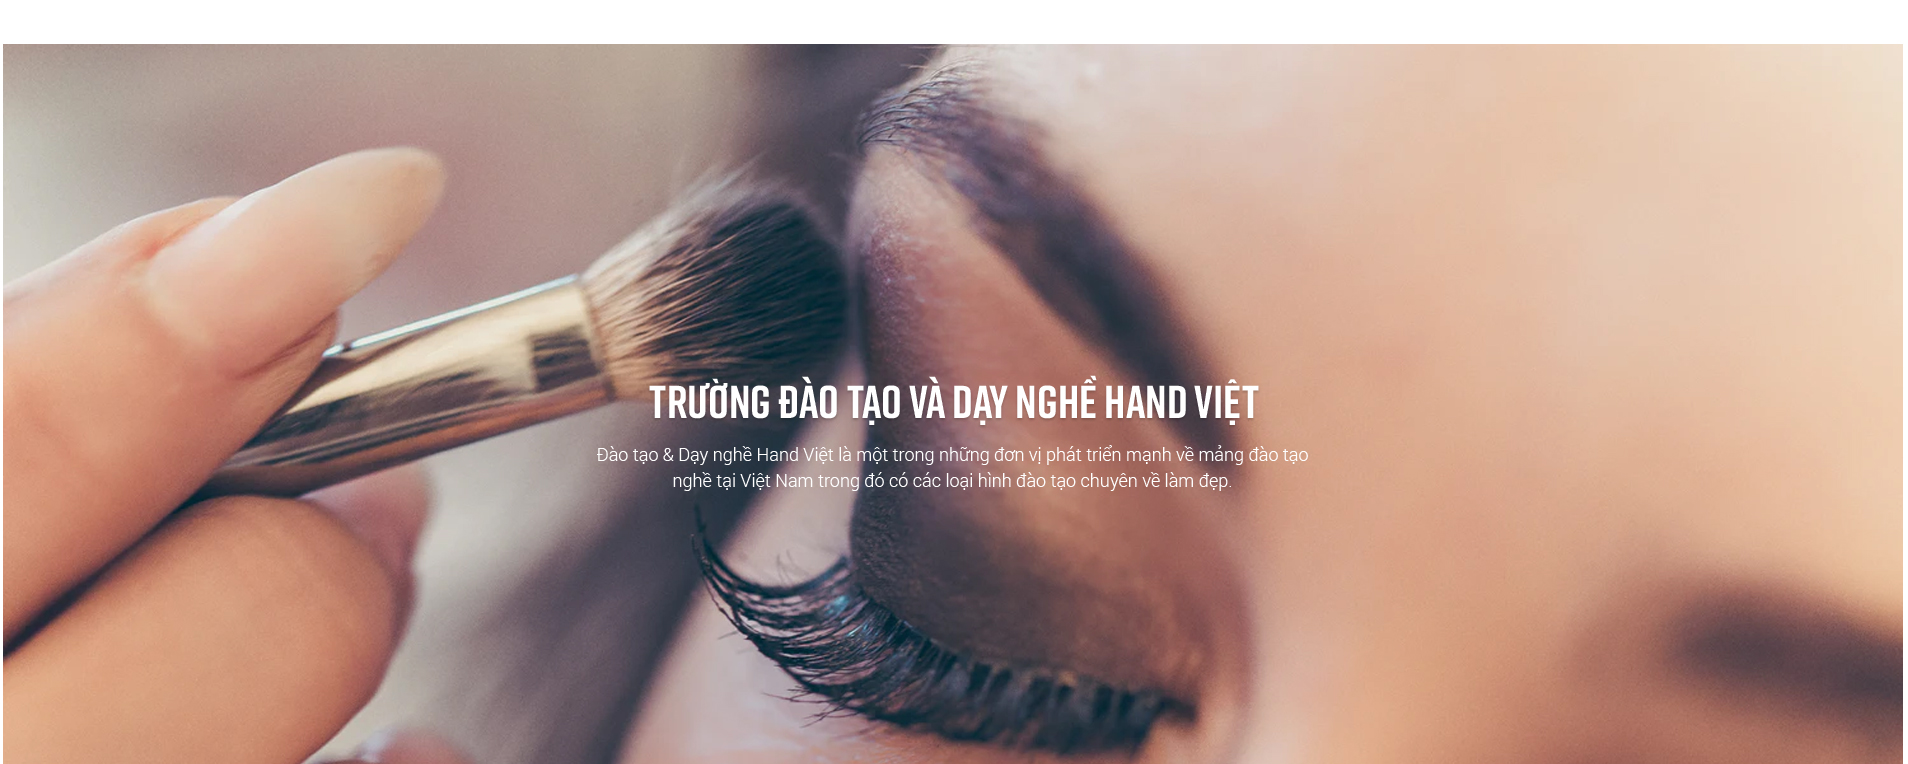 HANDVIỆT- VIỆN ĐÀO TẠO, NGHIÊN CỨU NGÀNH LÀM ĐẸP HÀNG ĐẦU VIỆT NAM